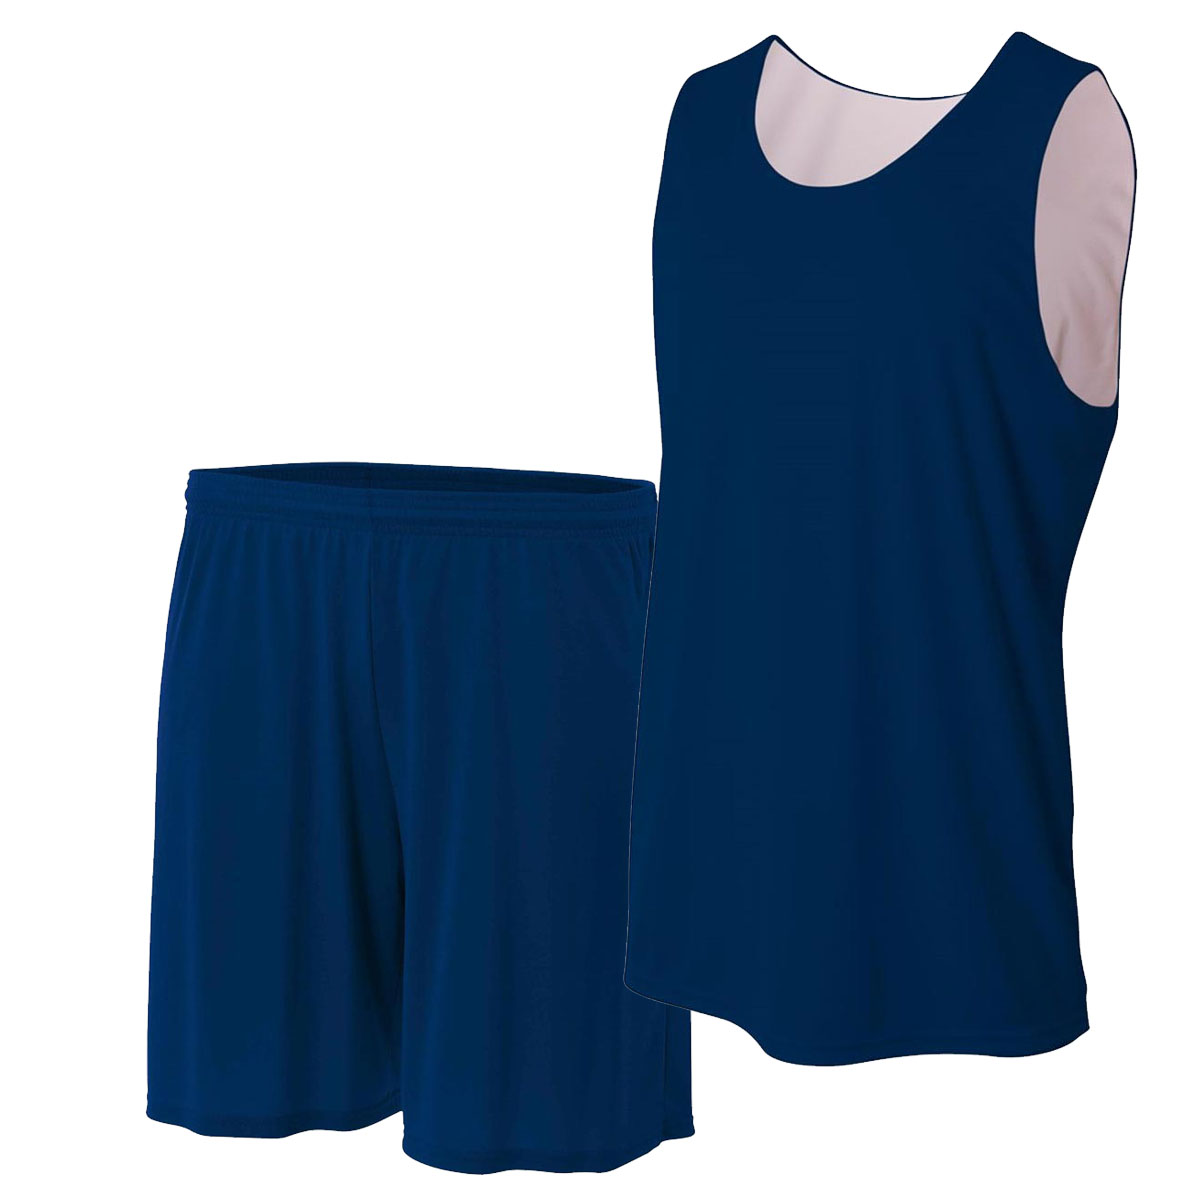 Reversible Basketball Uniforms Manufacturers in Nagpur